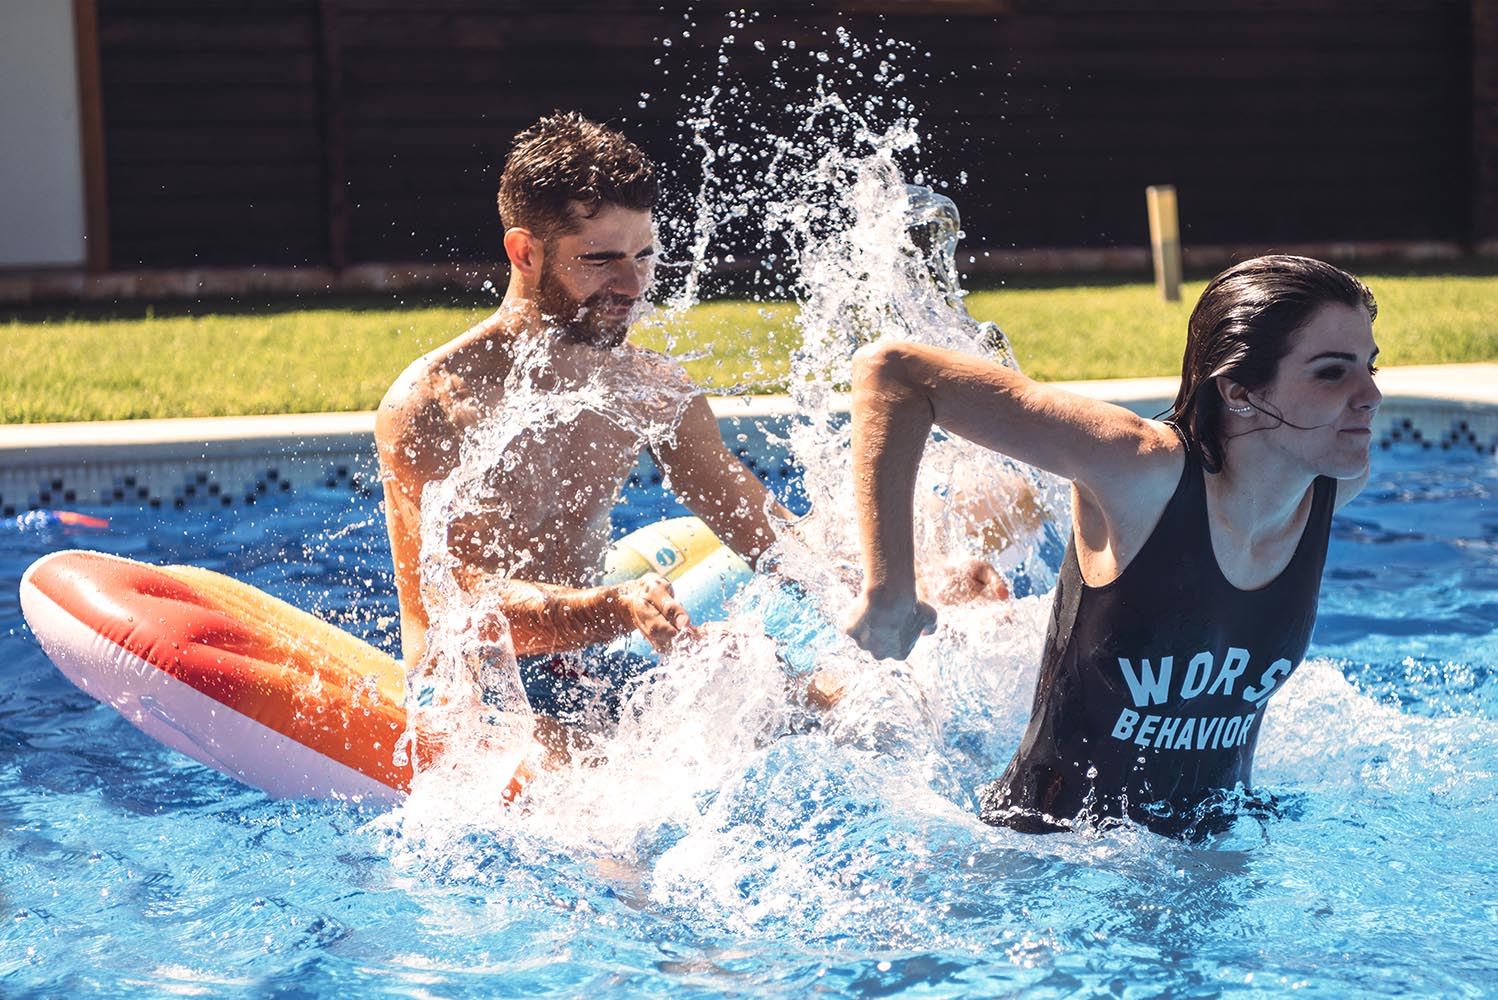 Woman splashing on man in pool